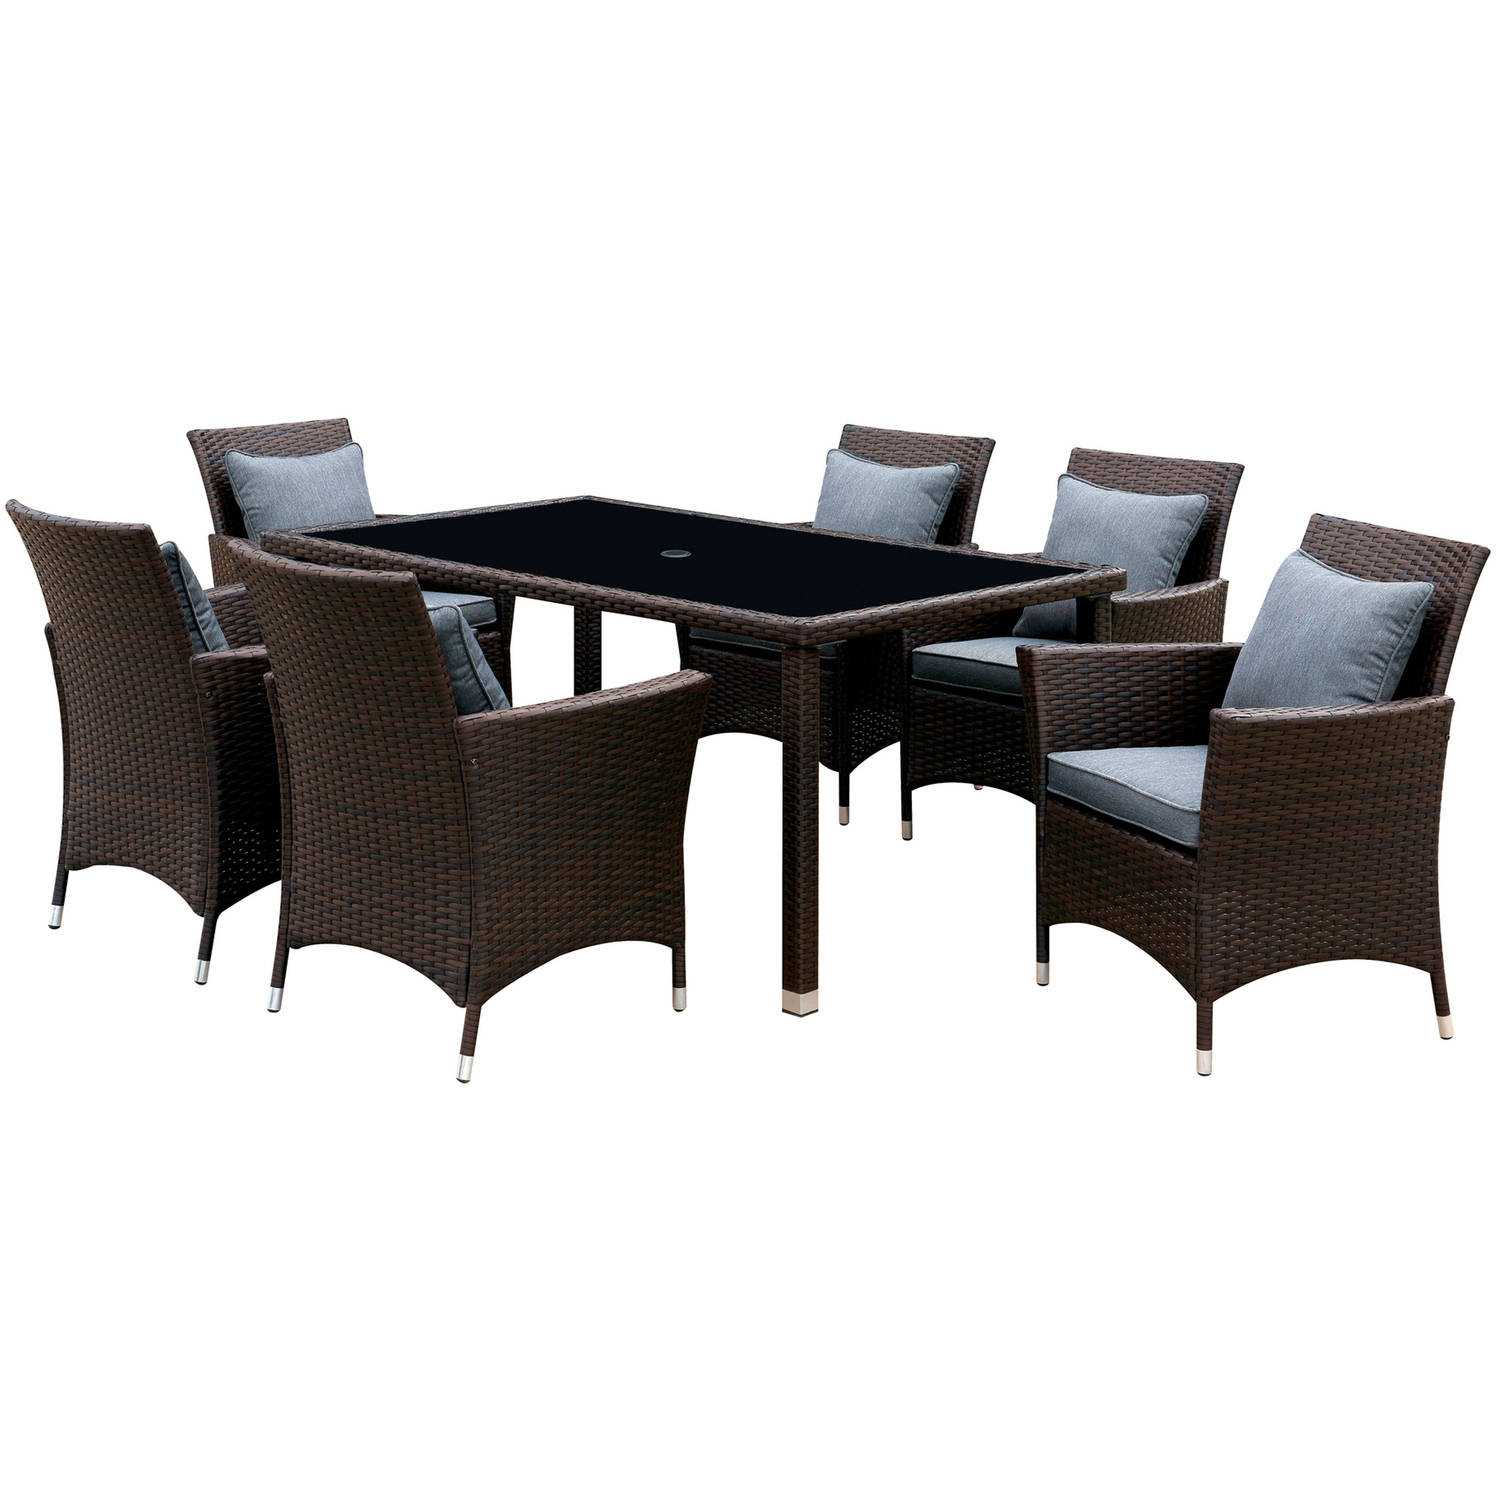 Furniture of America Karrie 7-Piece Patio Dining Room Set, Gray and Espresso by Furniture of America